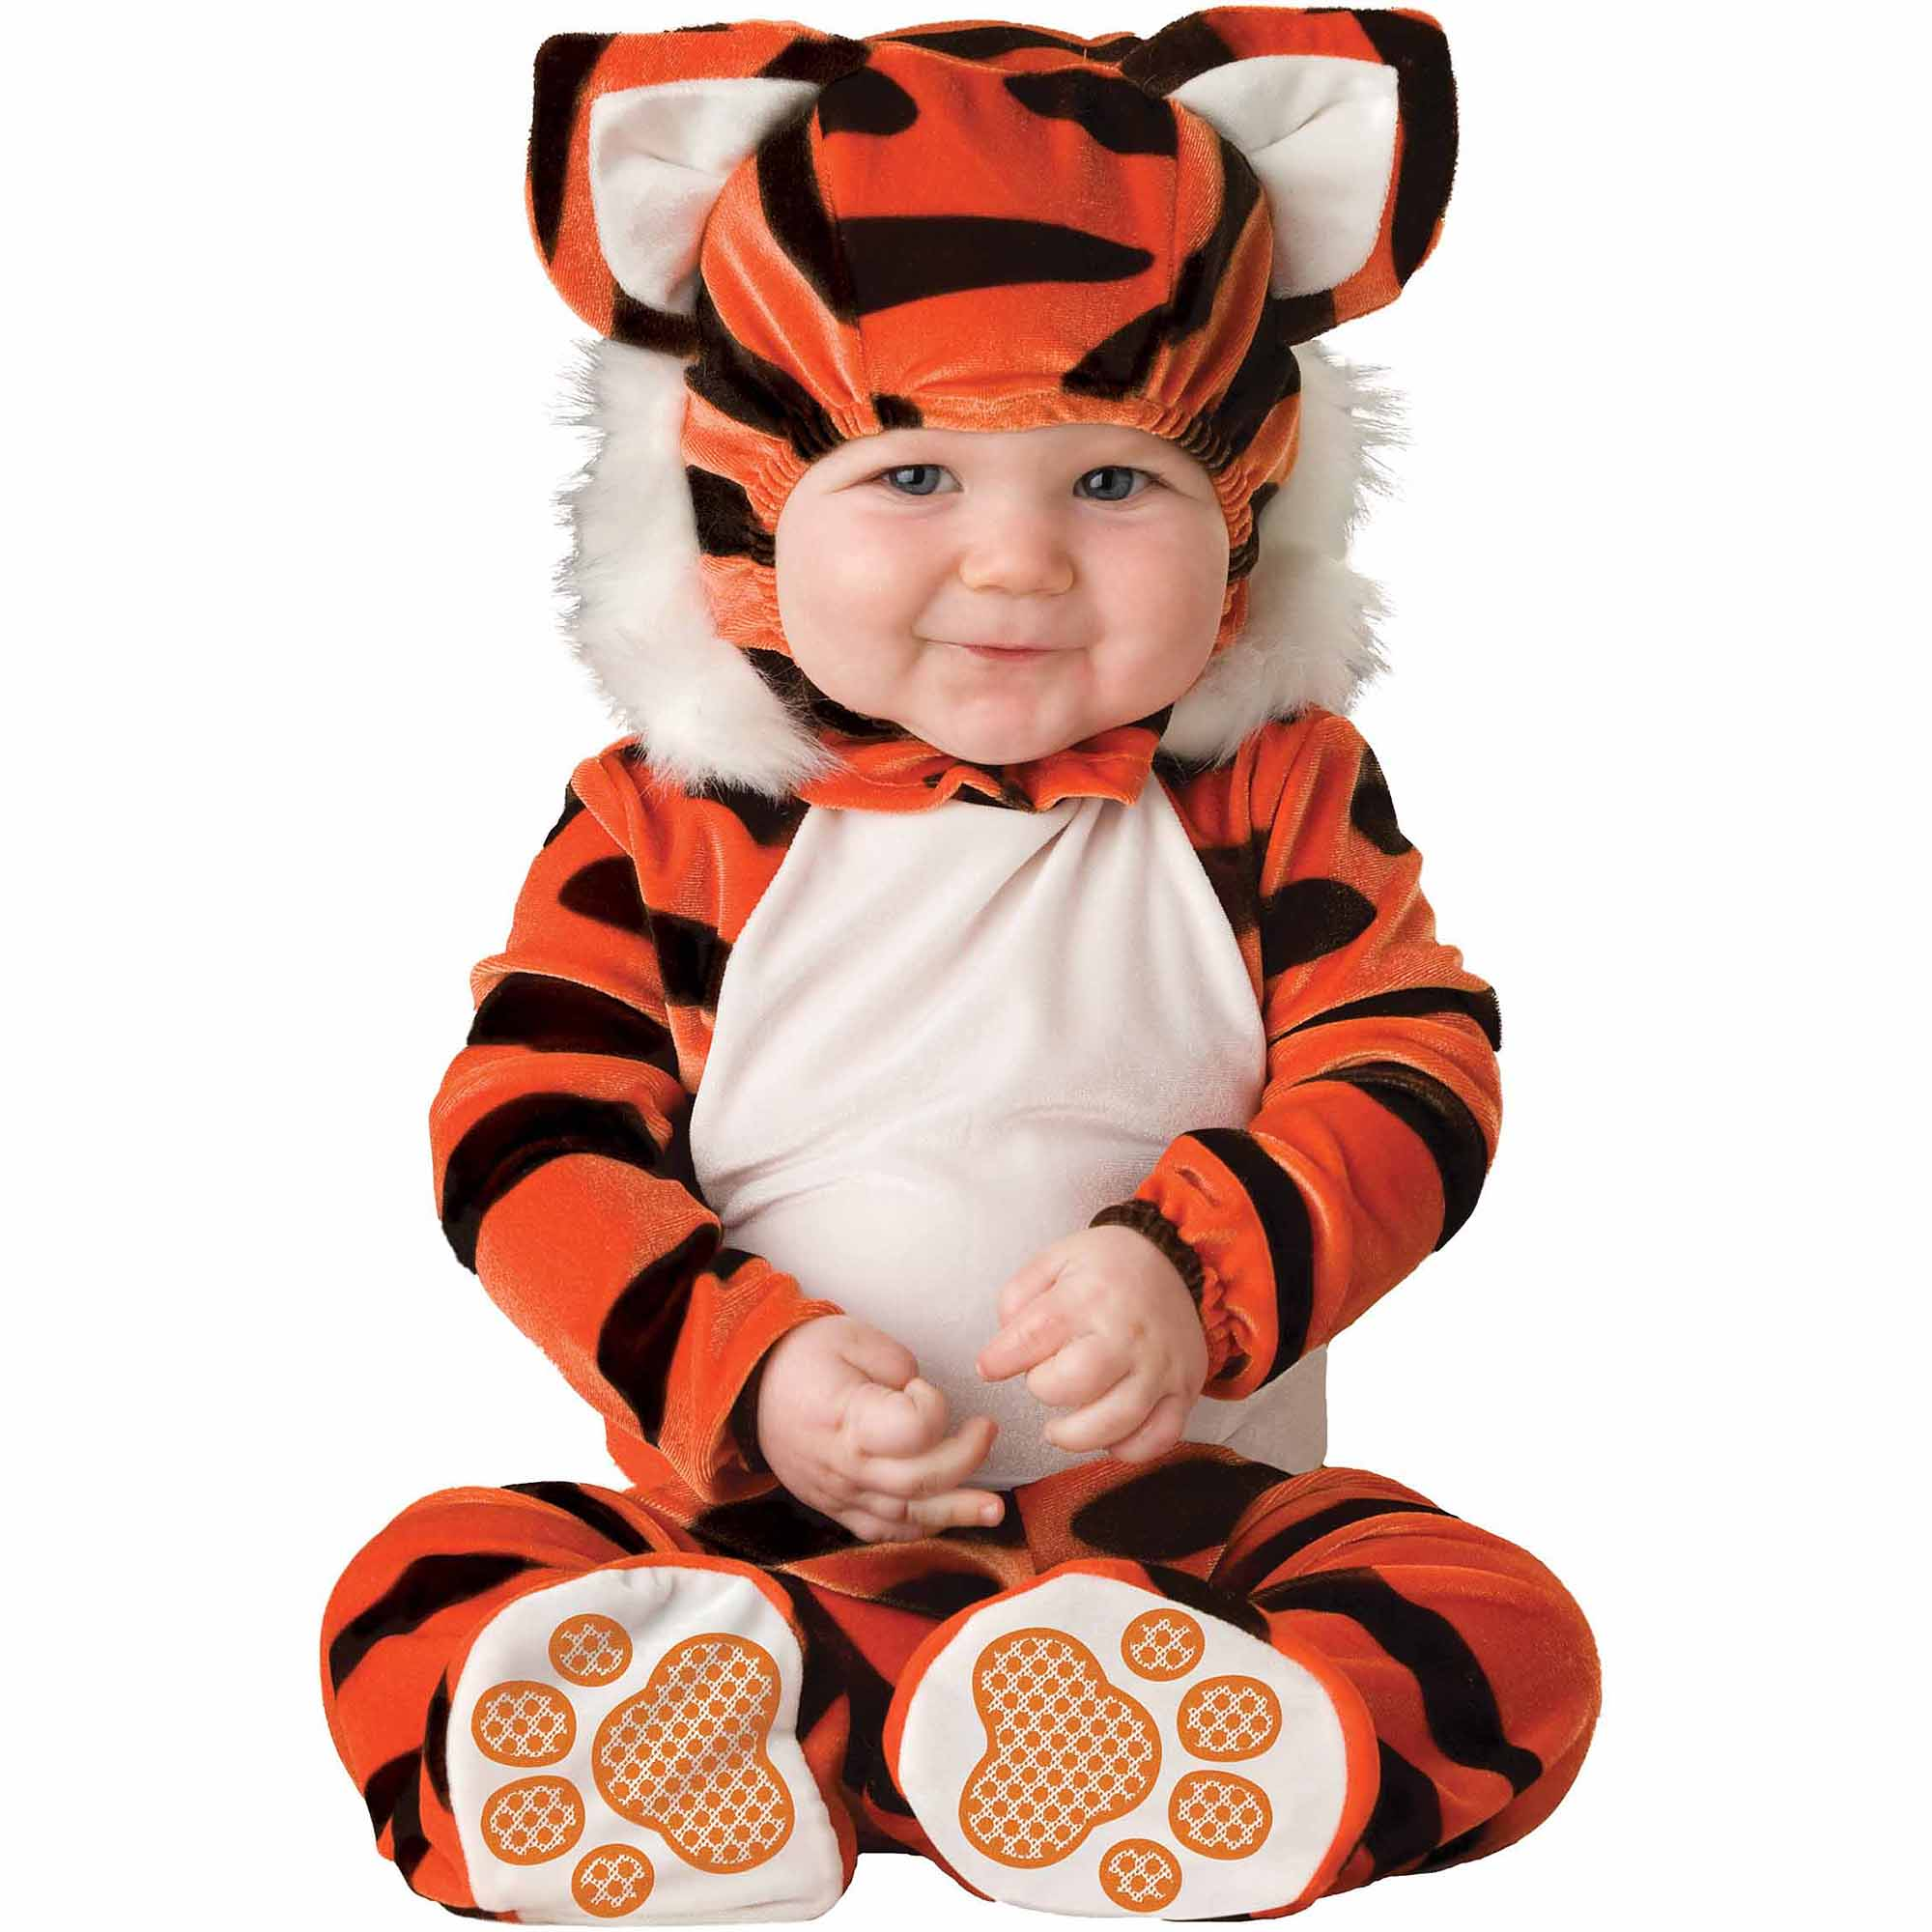 9 Month Old Baby Halloween Costumes | Classy Baby Gear